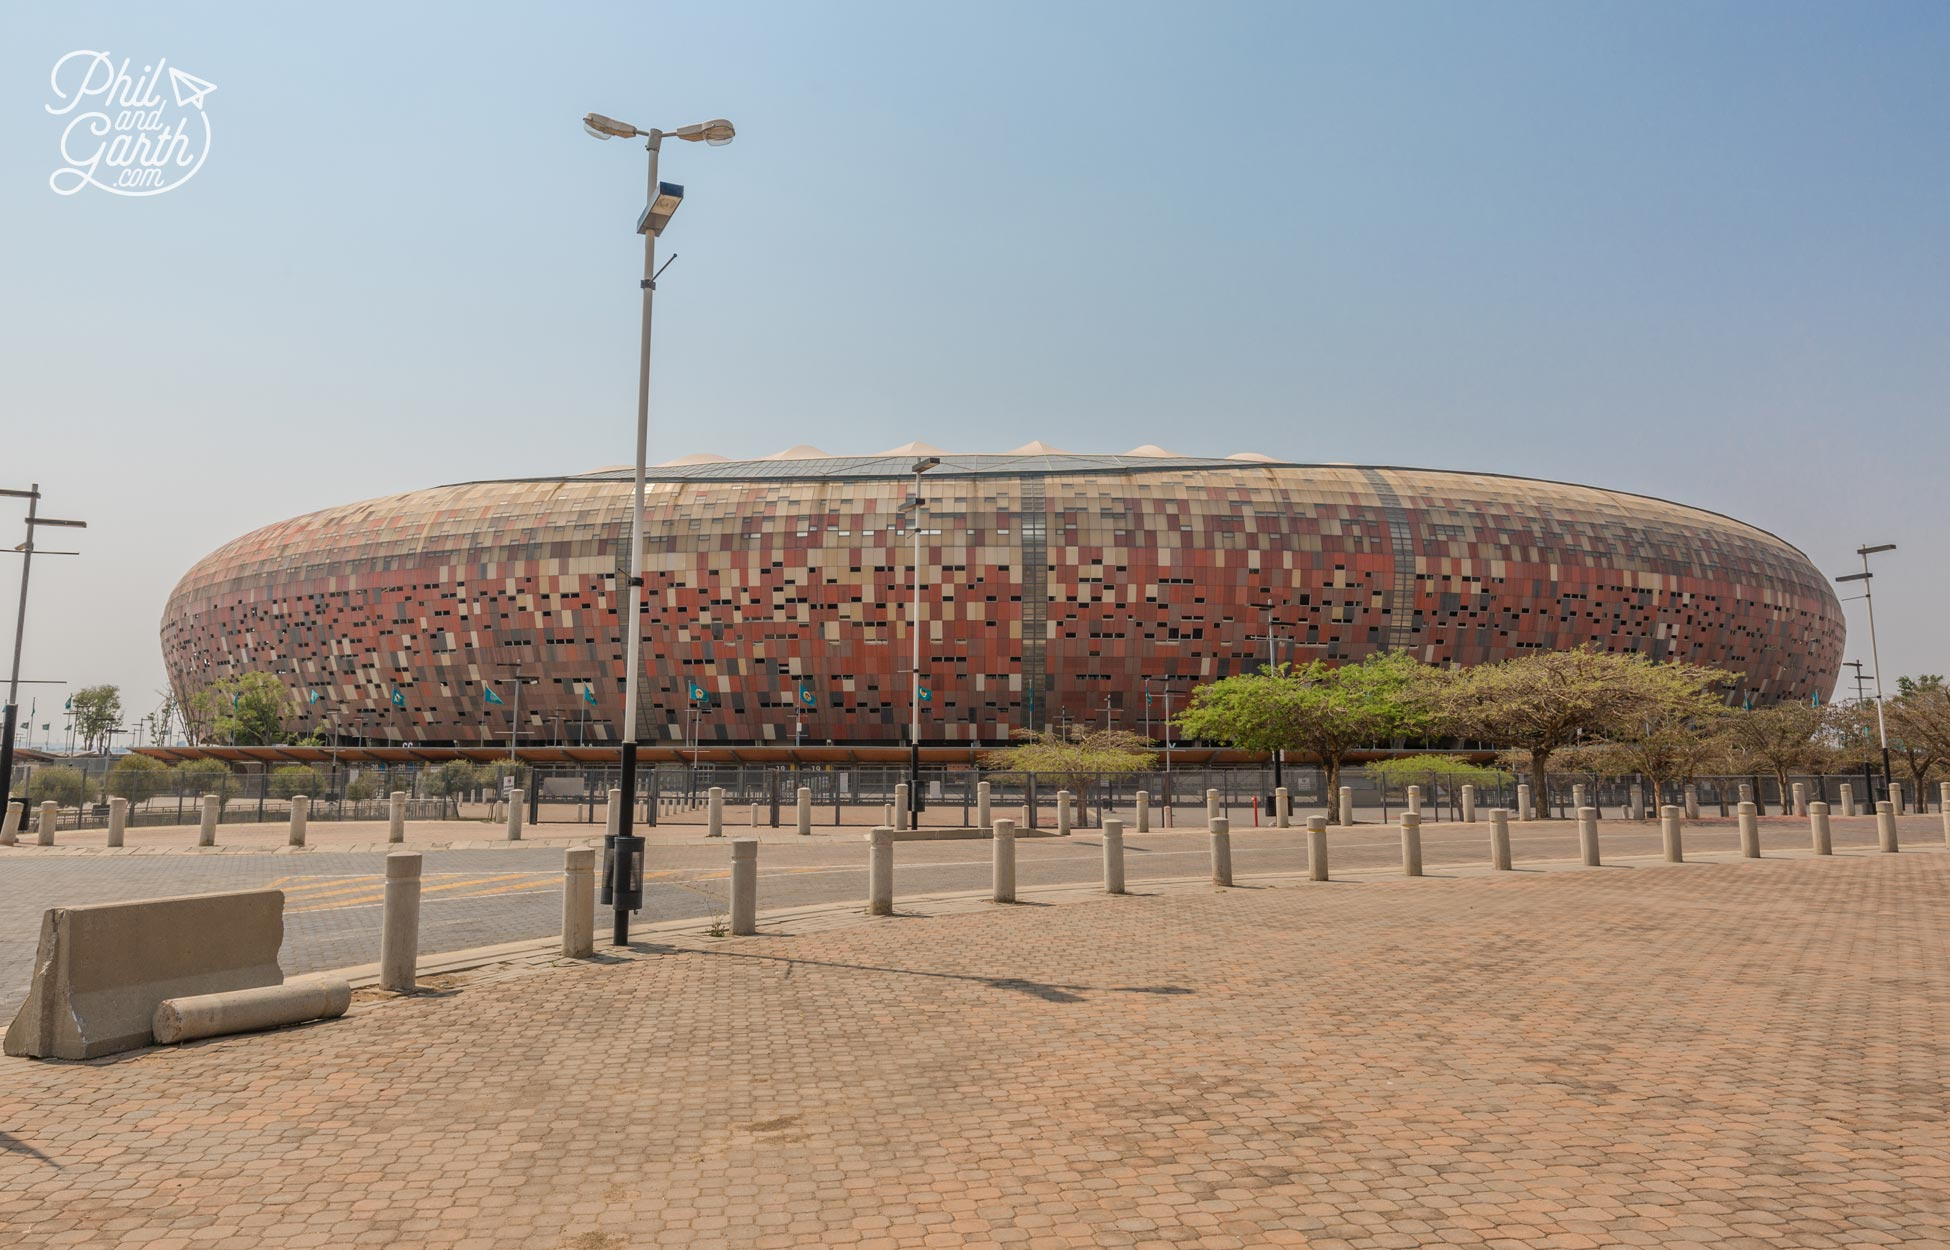 The FNB Stadium in Johannesburg